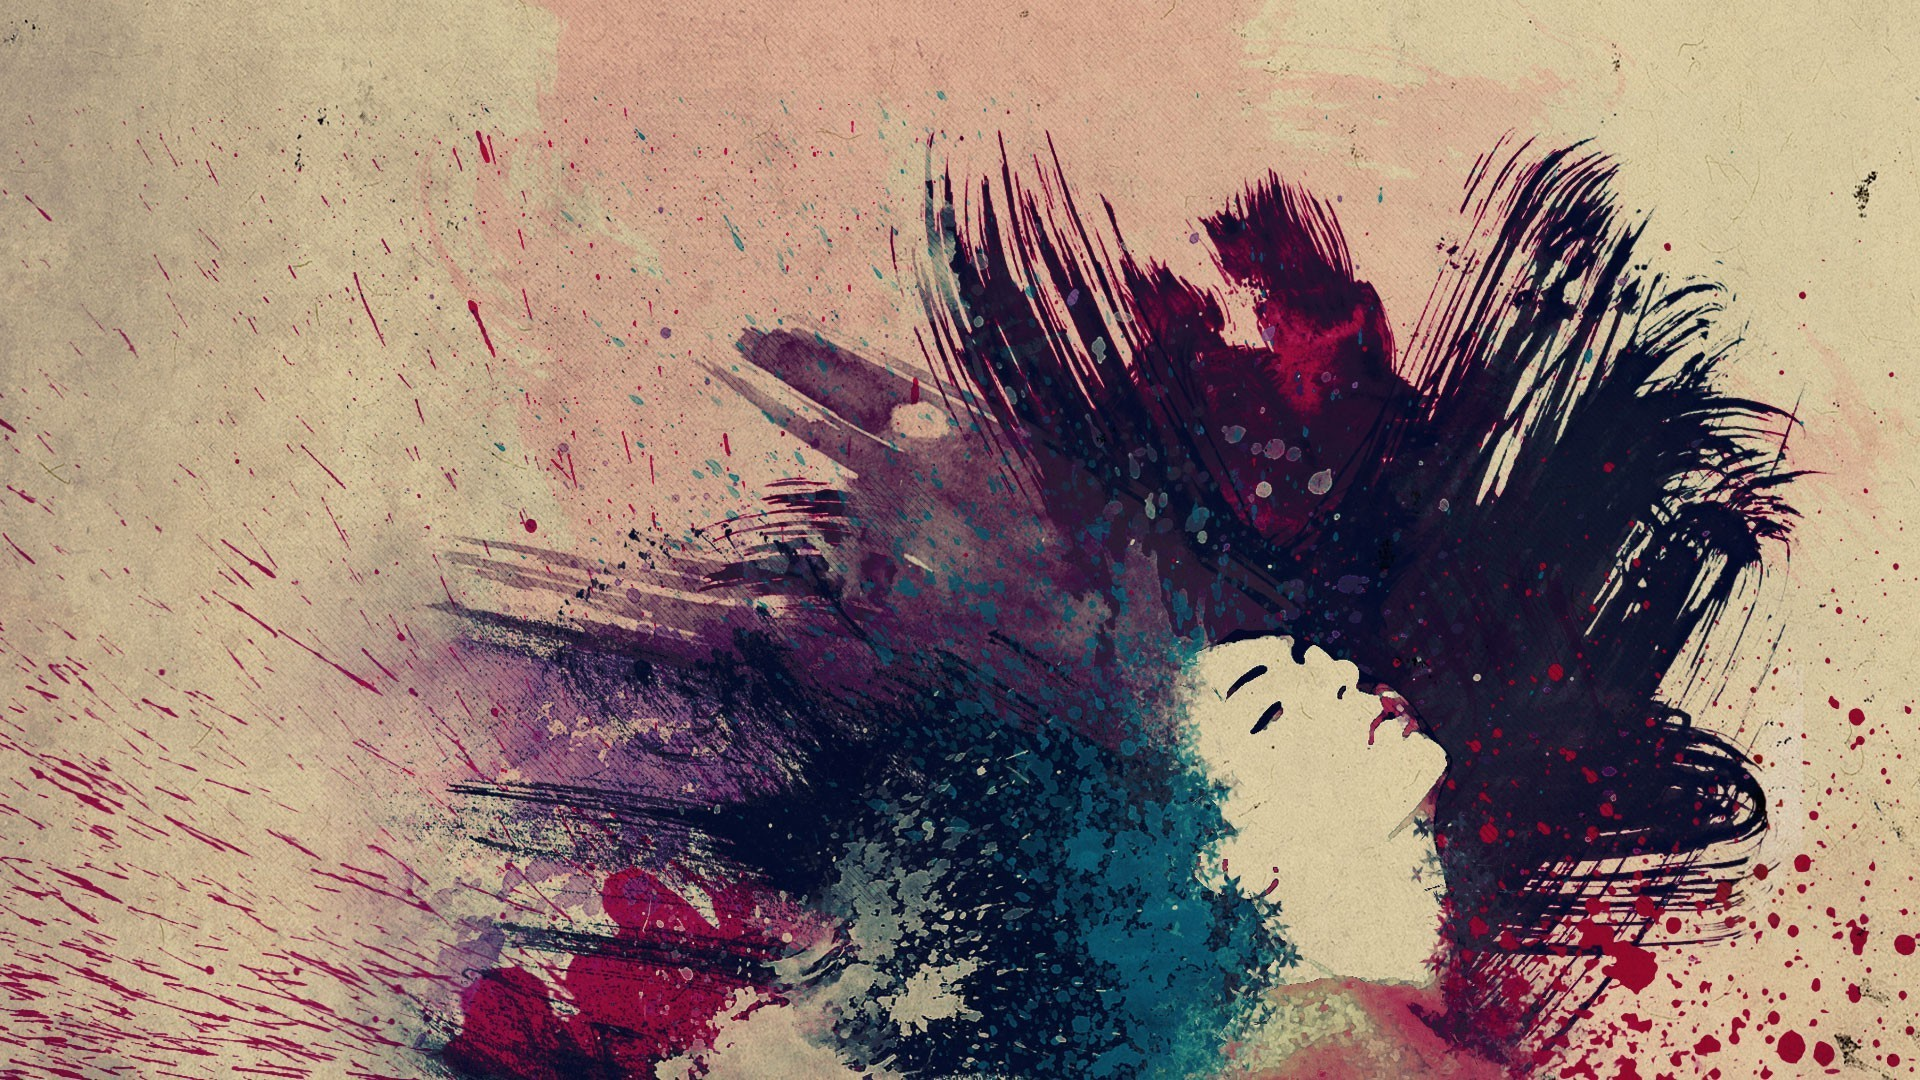 Paint Splatter Wallpapers ·â'